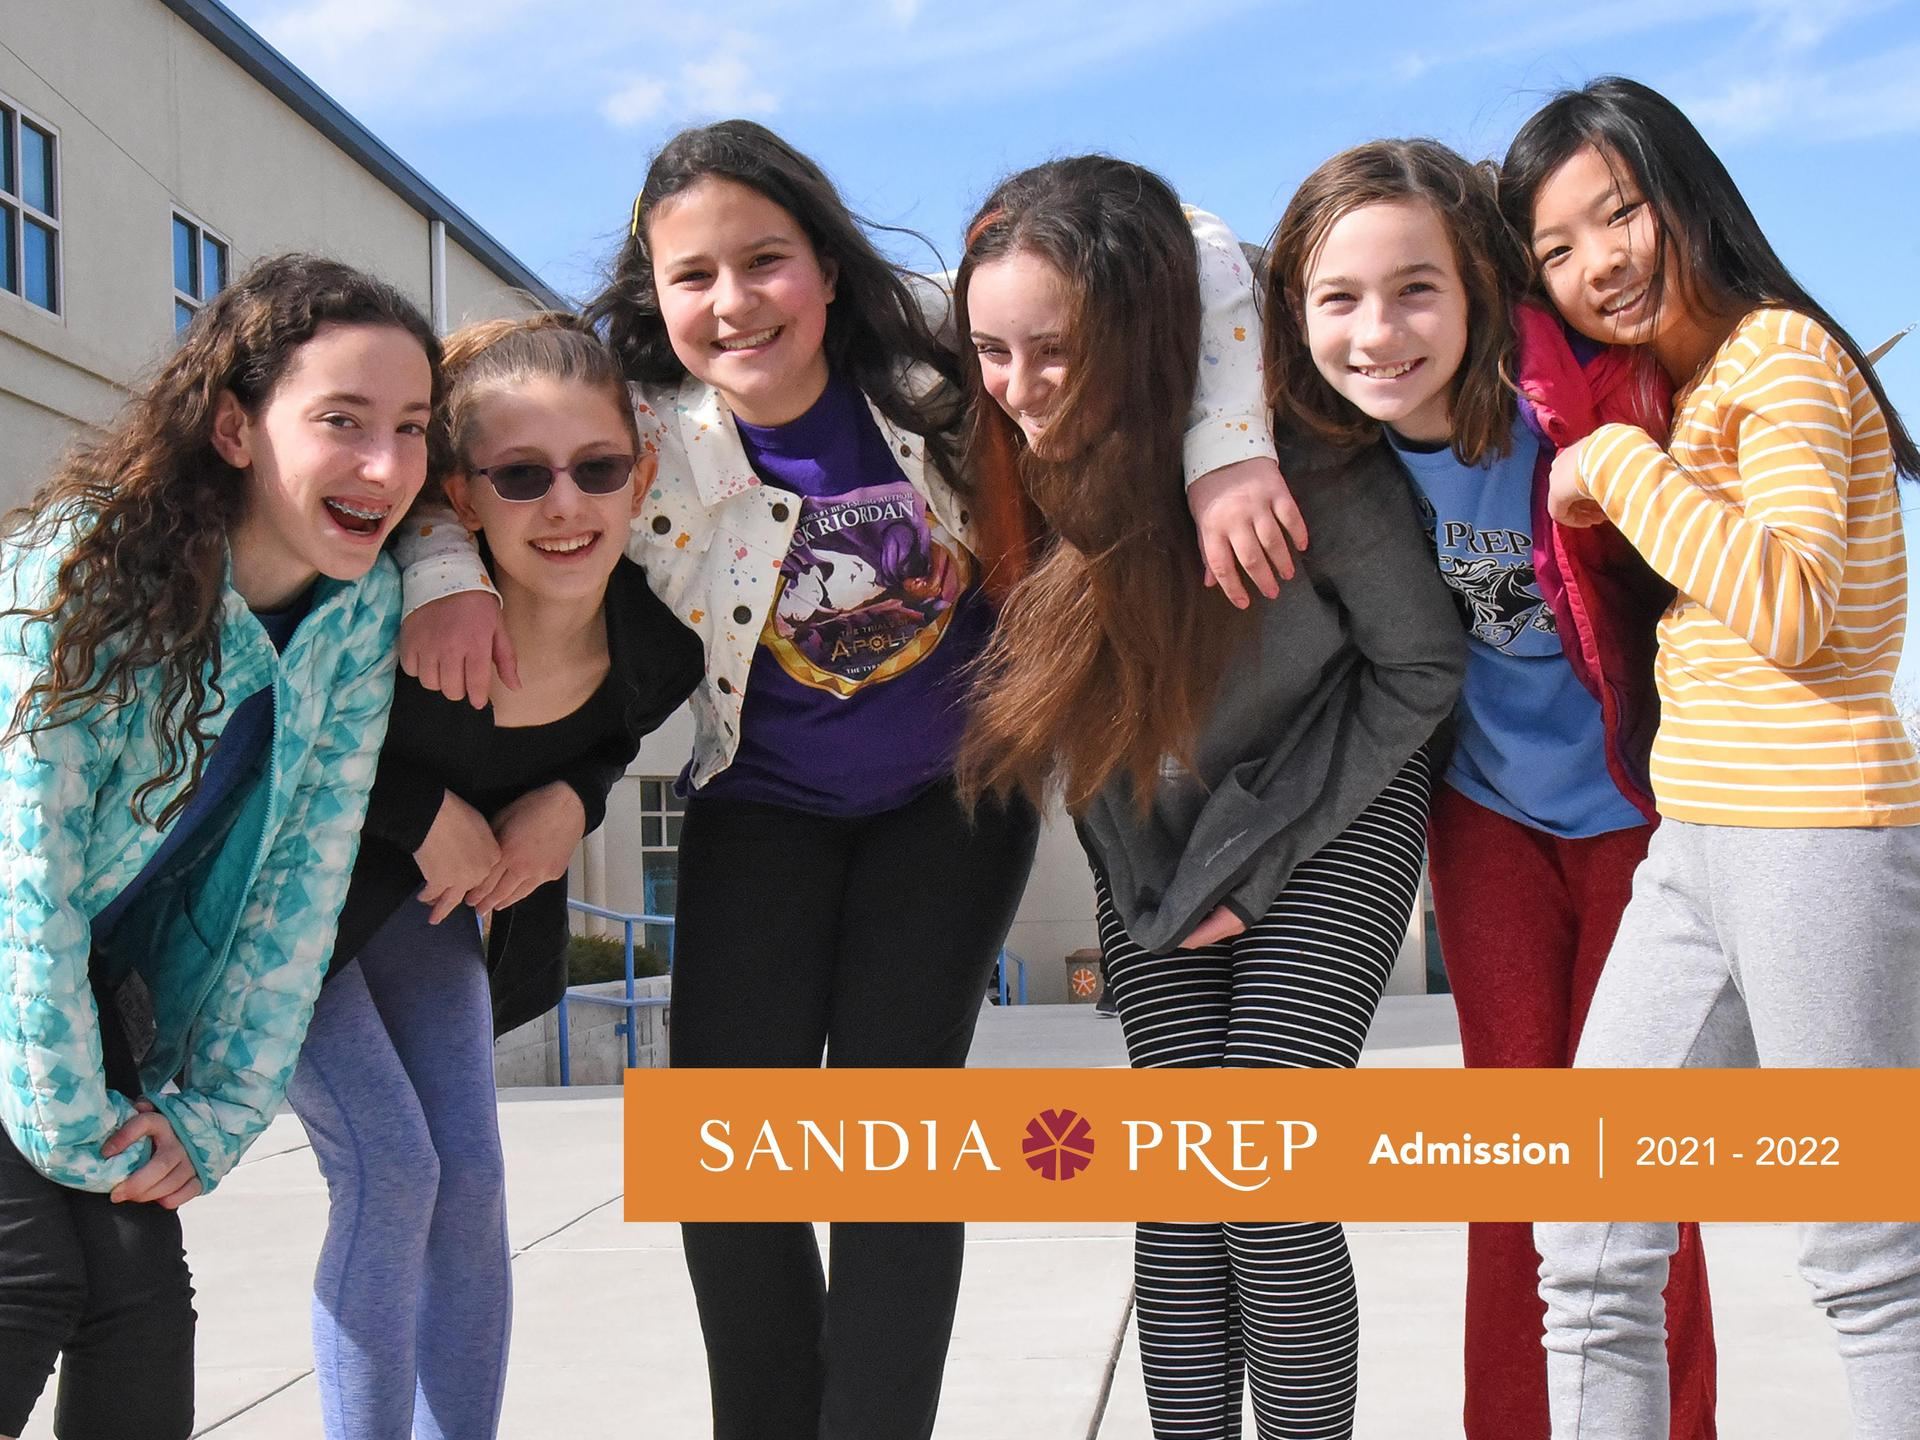 Apply to Sandia Prep today - Explore our digital viewbook